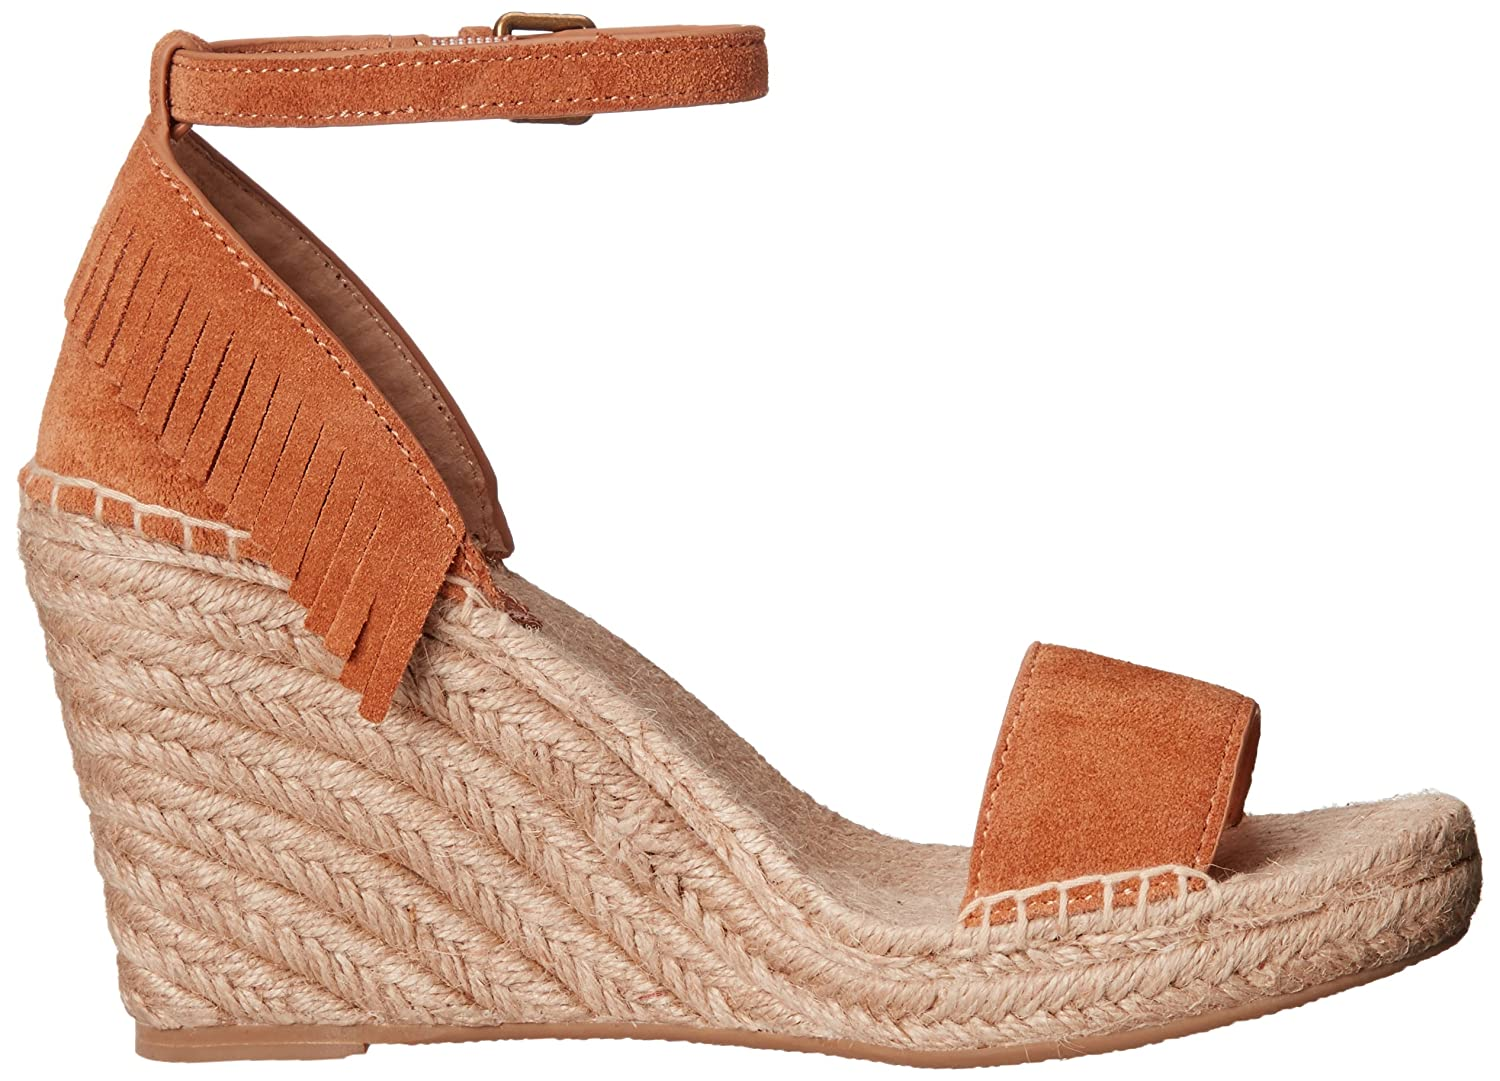 FRYE Women's Lila Feather Espadrille Wedge Sandal